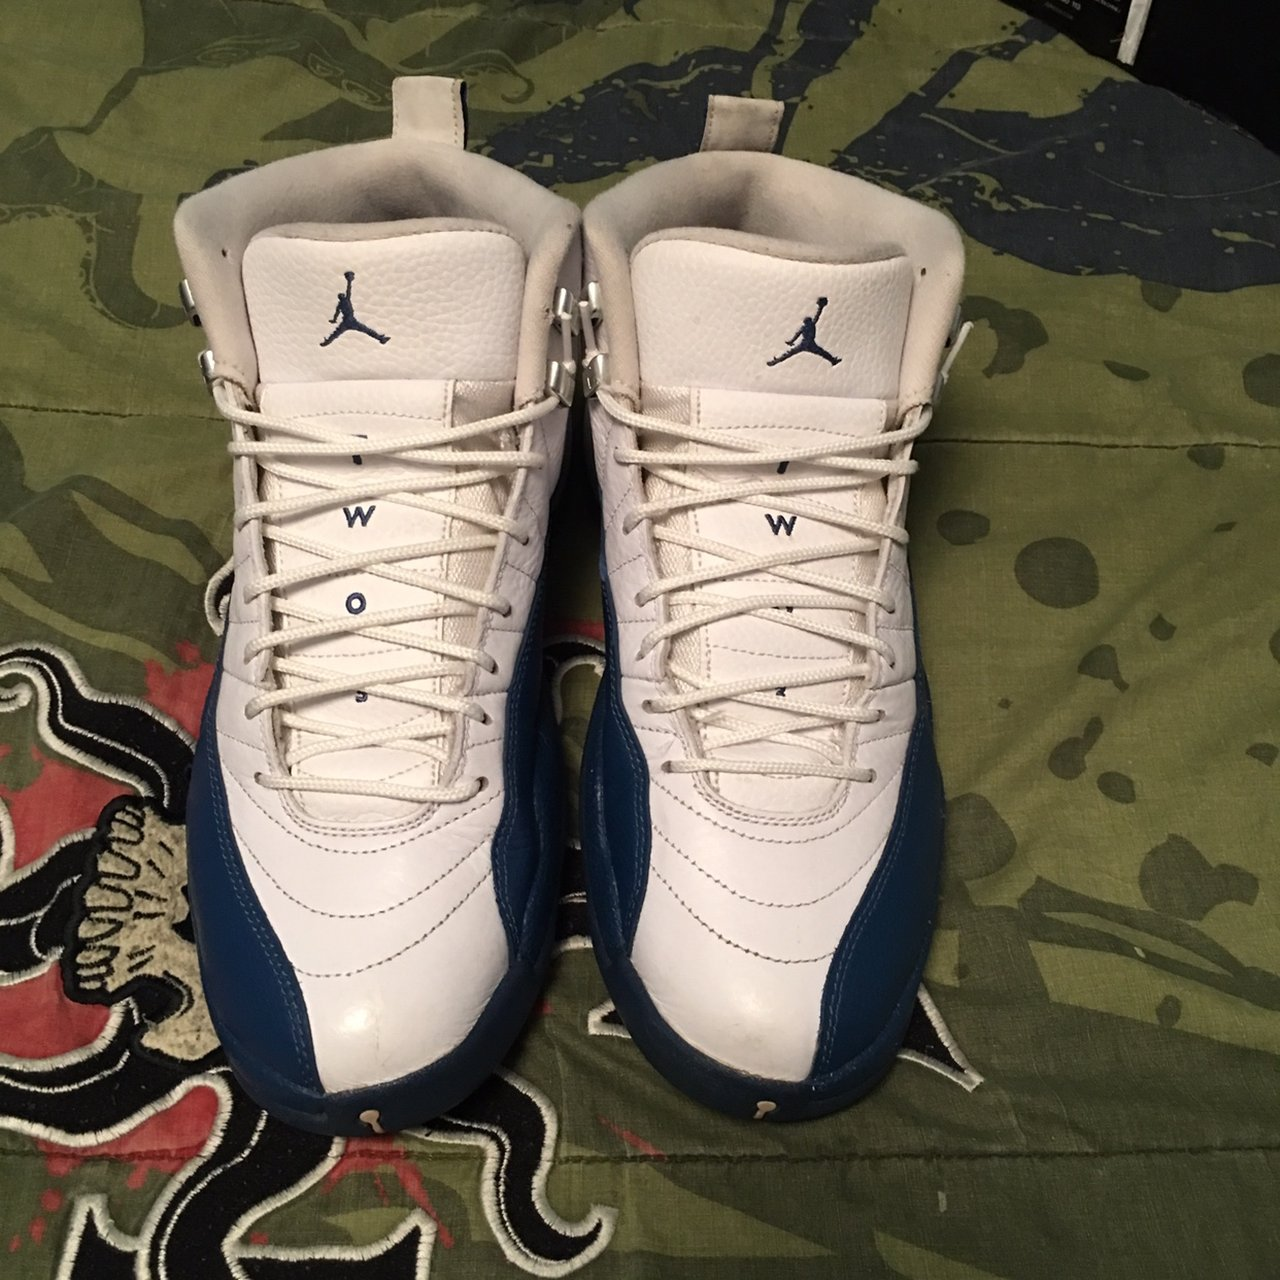 706c52720e7 French Blue 12s (2016) size 10.5. These are in very good are - Depop